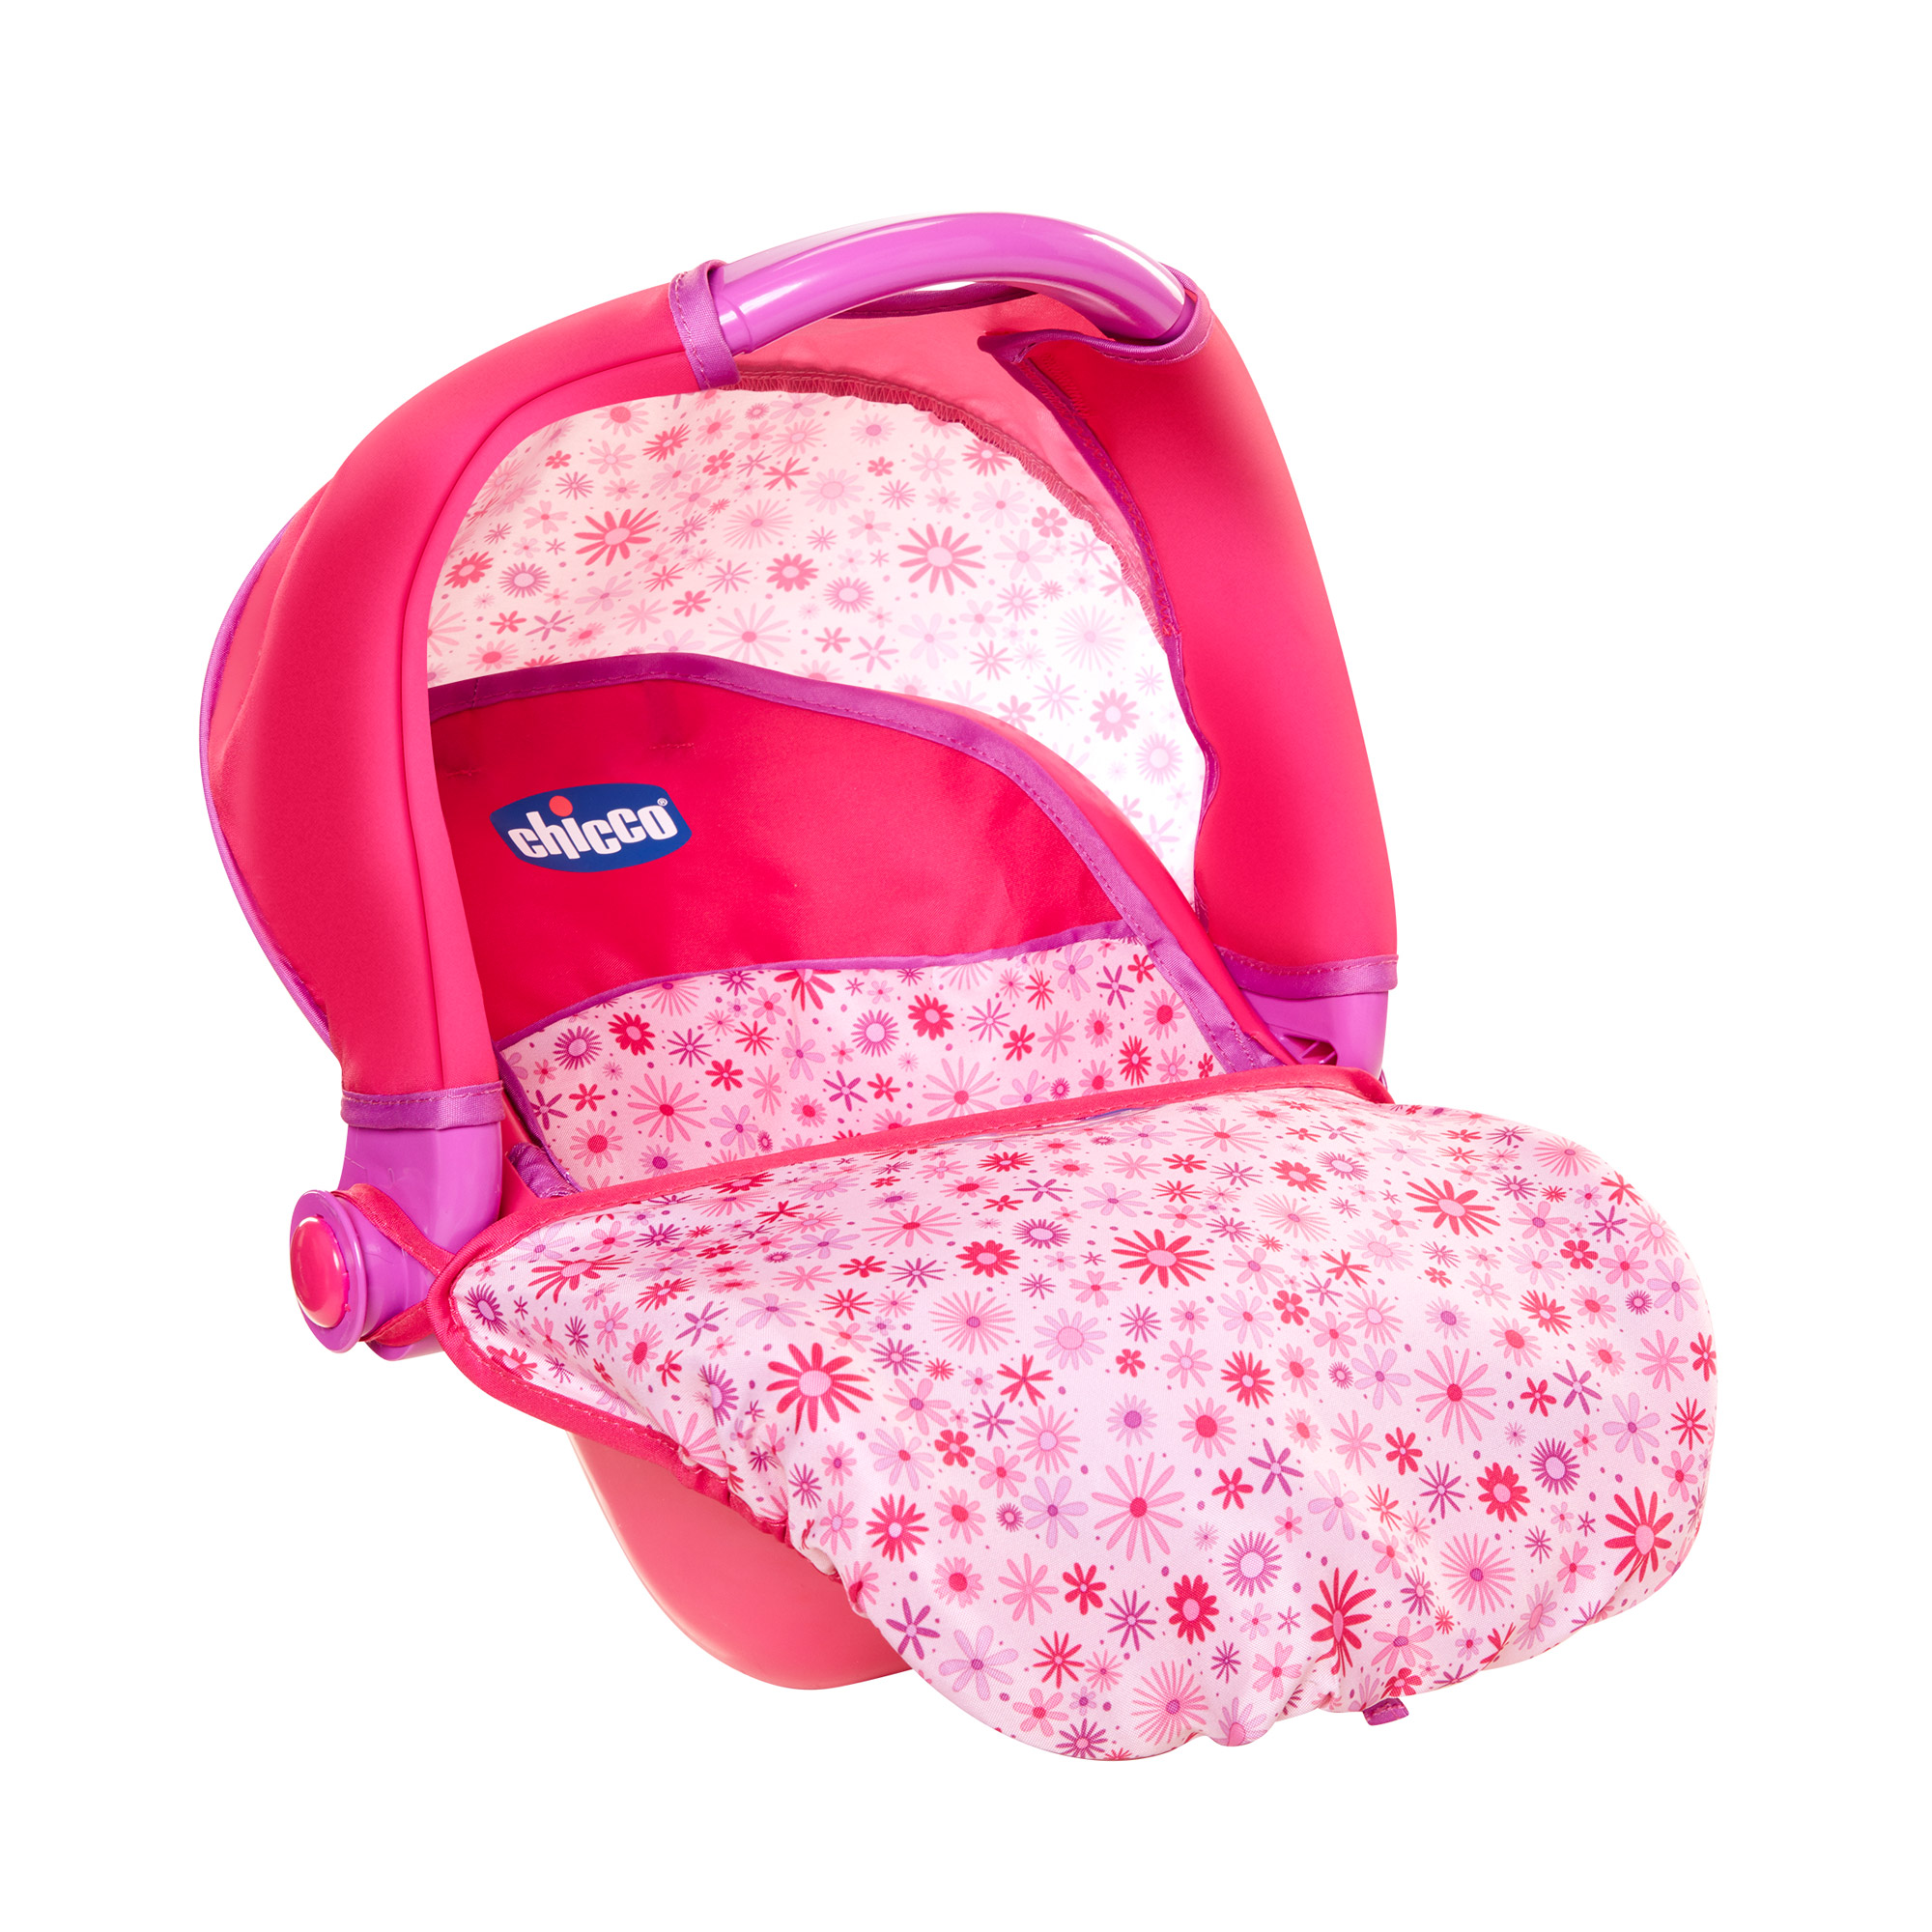 Chicco Doll Travel Seat with Canopy